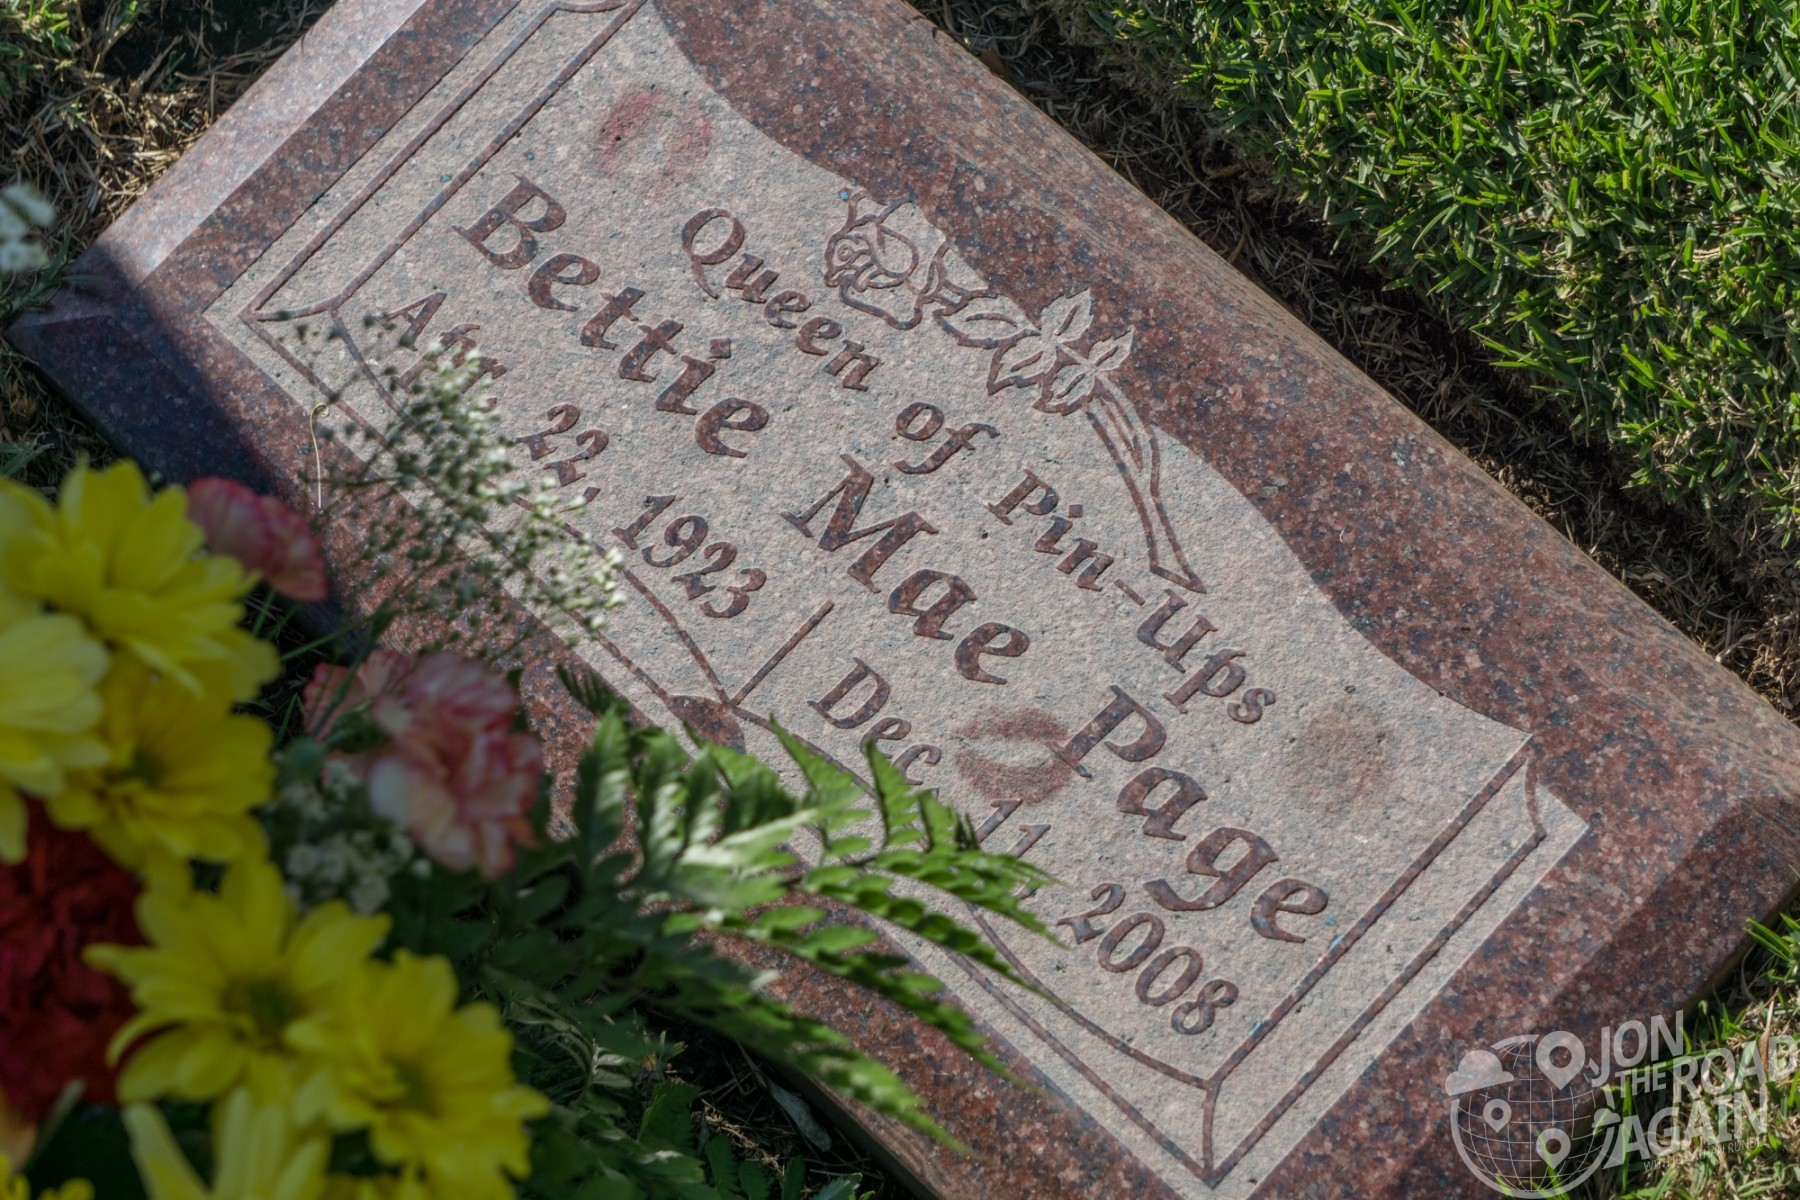 Bettie Page grave